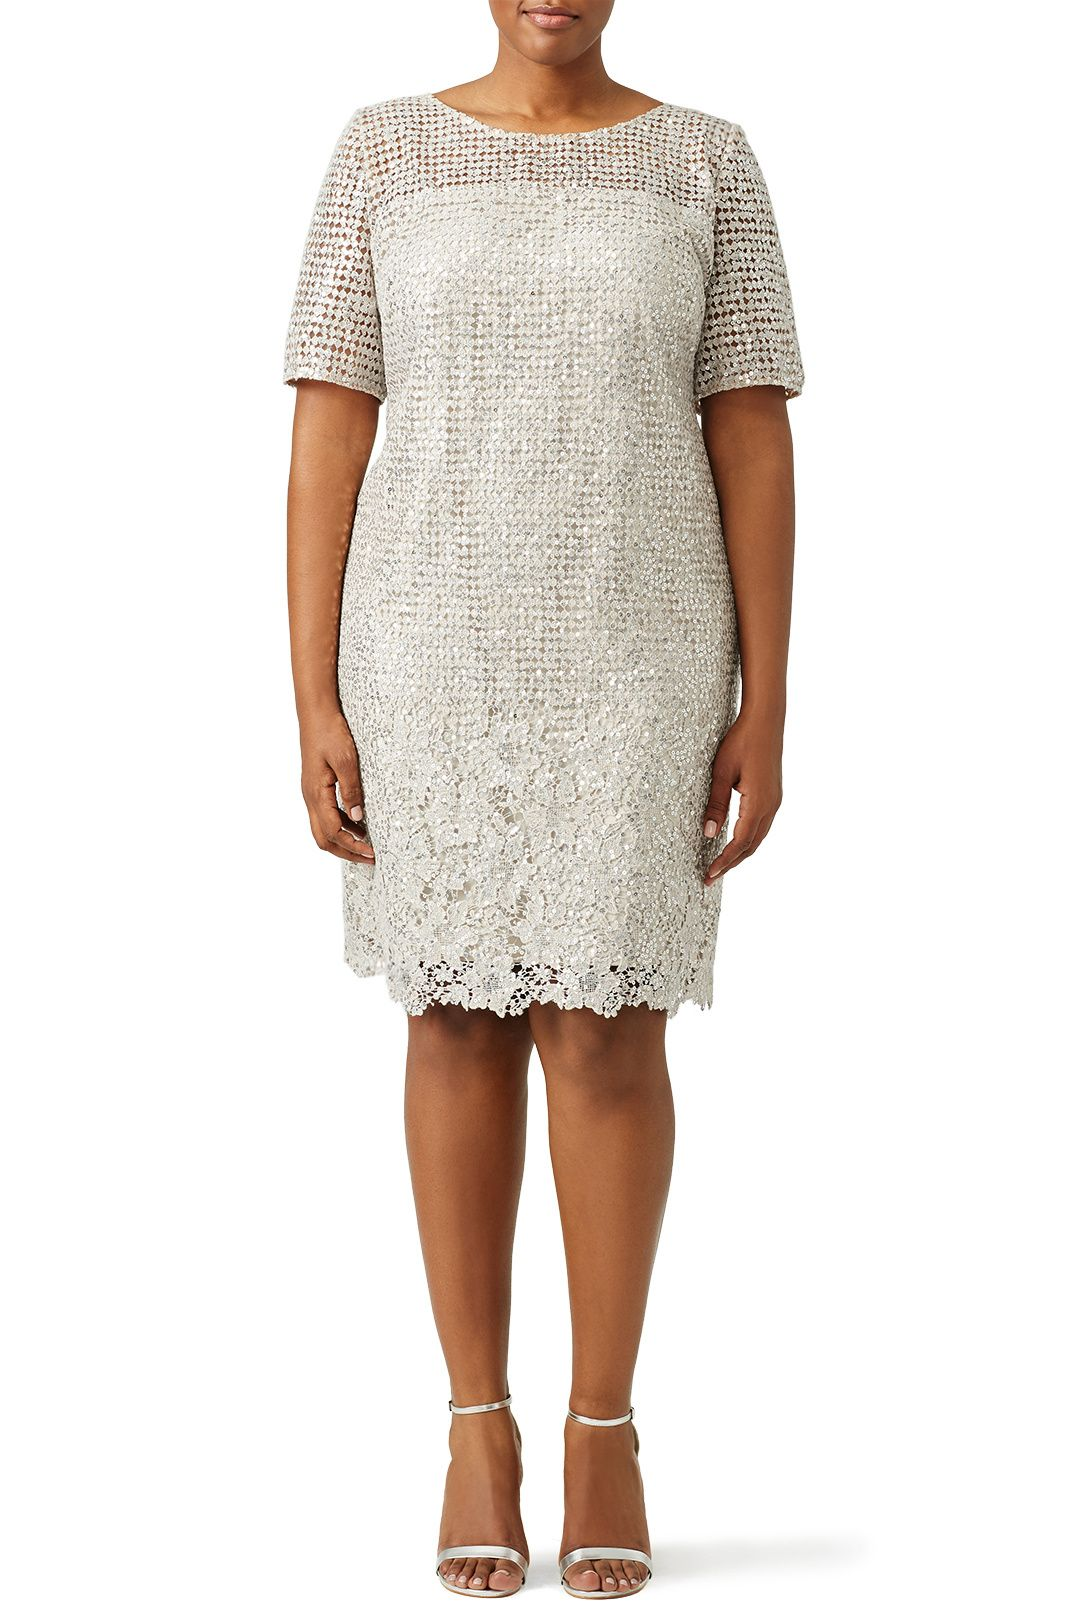 Silver sequined lace cocktail dress shops lace and cocktail dresses